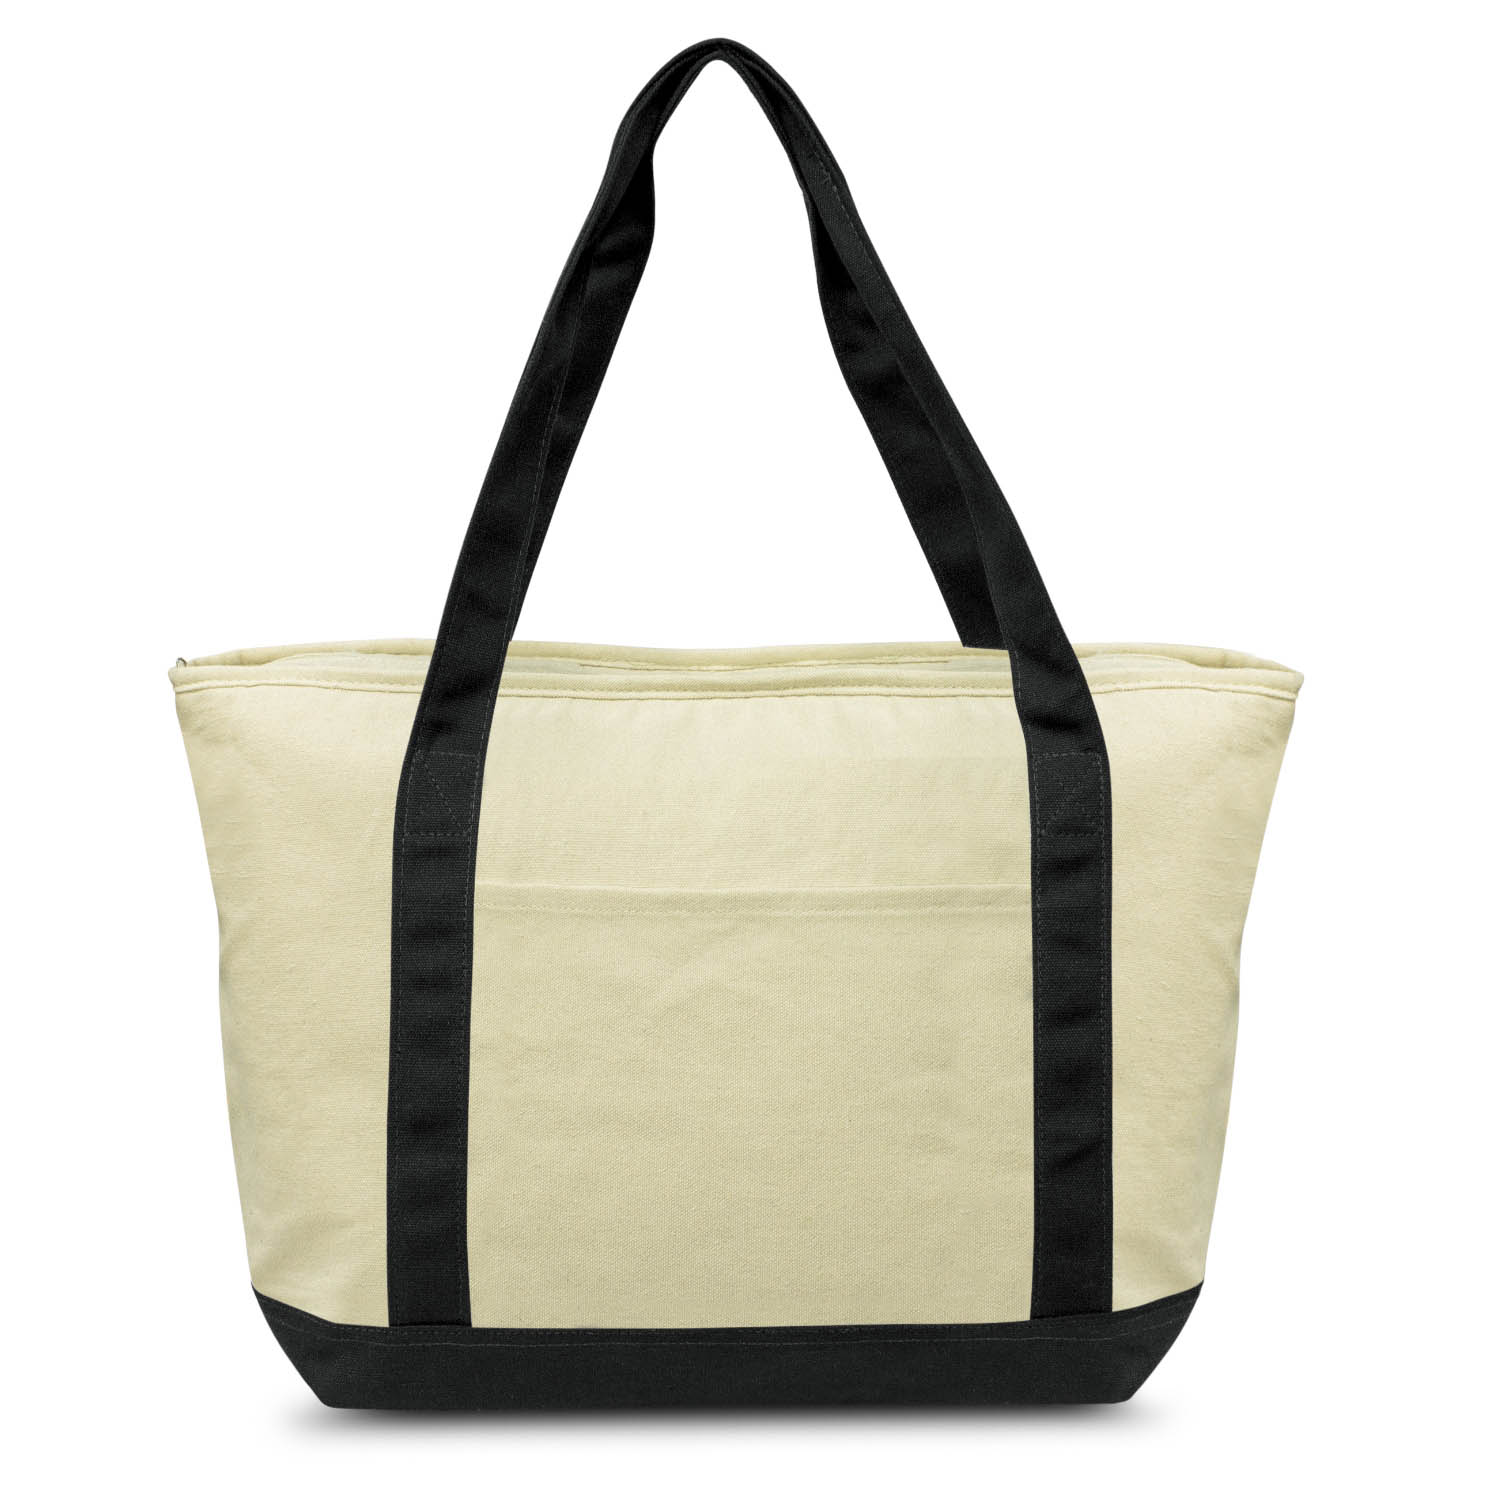 Promotional Calico Cooler Bags in Australia